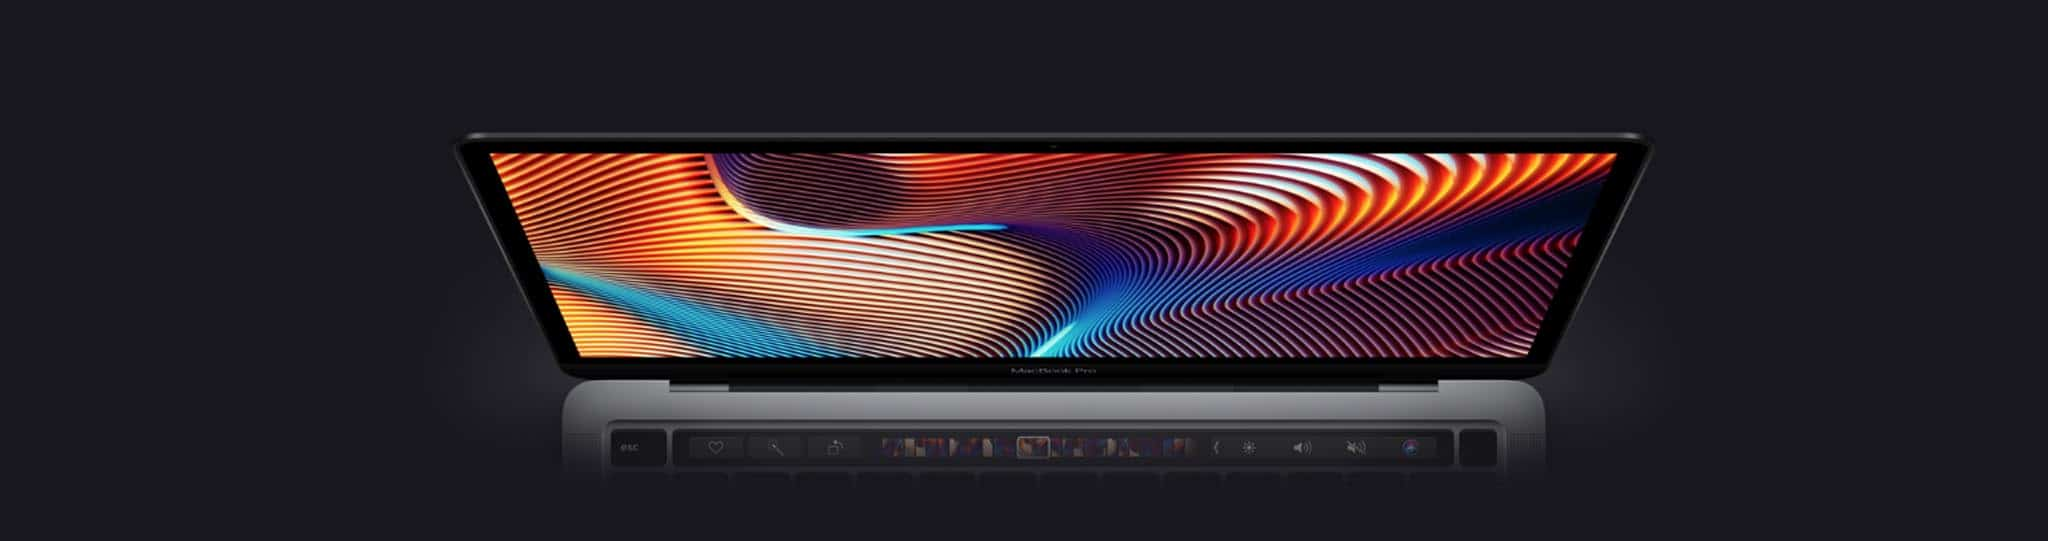 Apple MacBook Pro 2020 | Touch Bar | 13-inch | 512GB | i5 | 2.0GHz | Space Grey